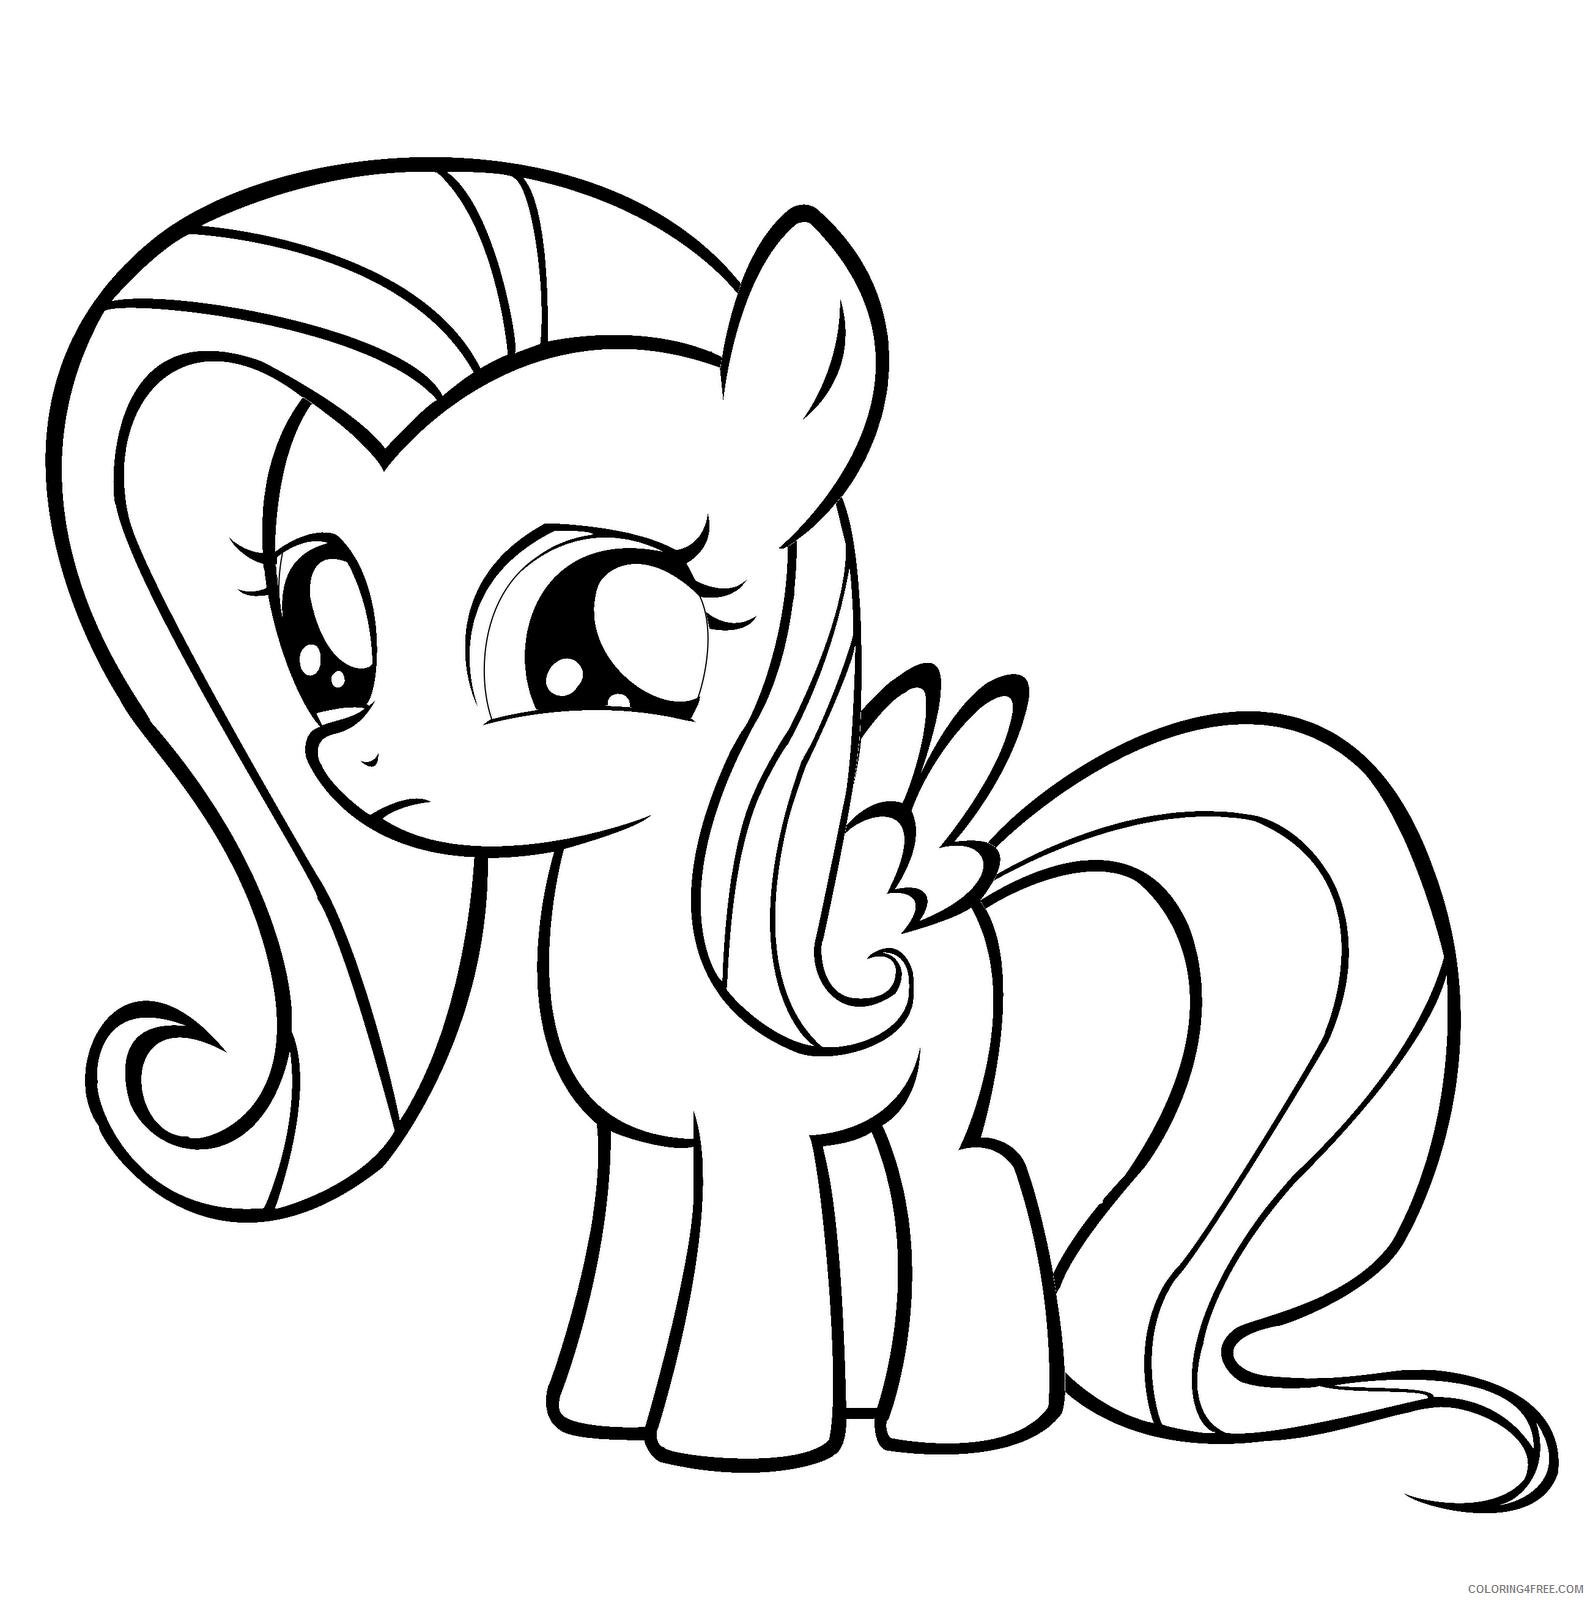 Fluttershy Coloring Pages Fluttershy Printable 2021 2677 Coloring4free